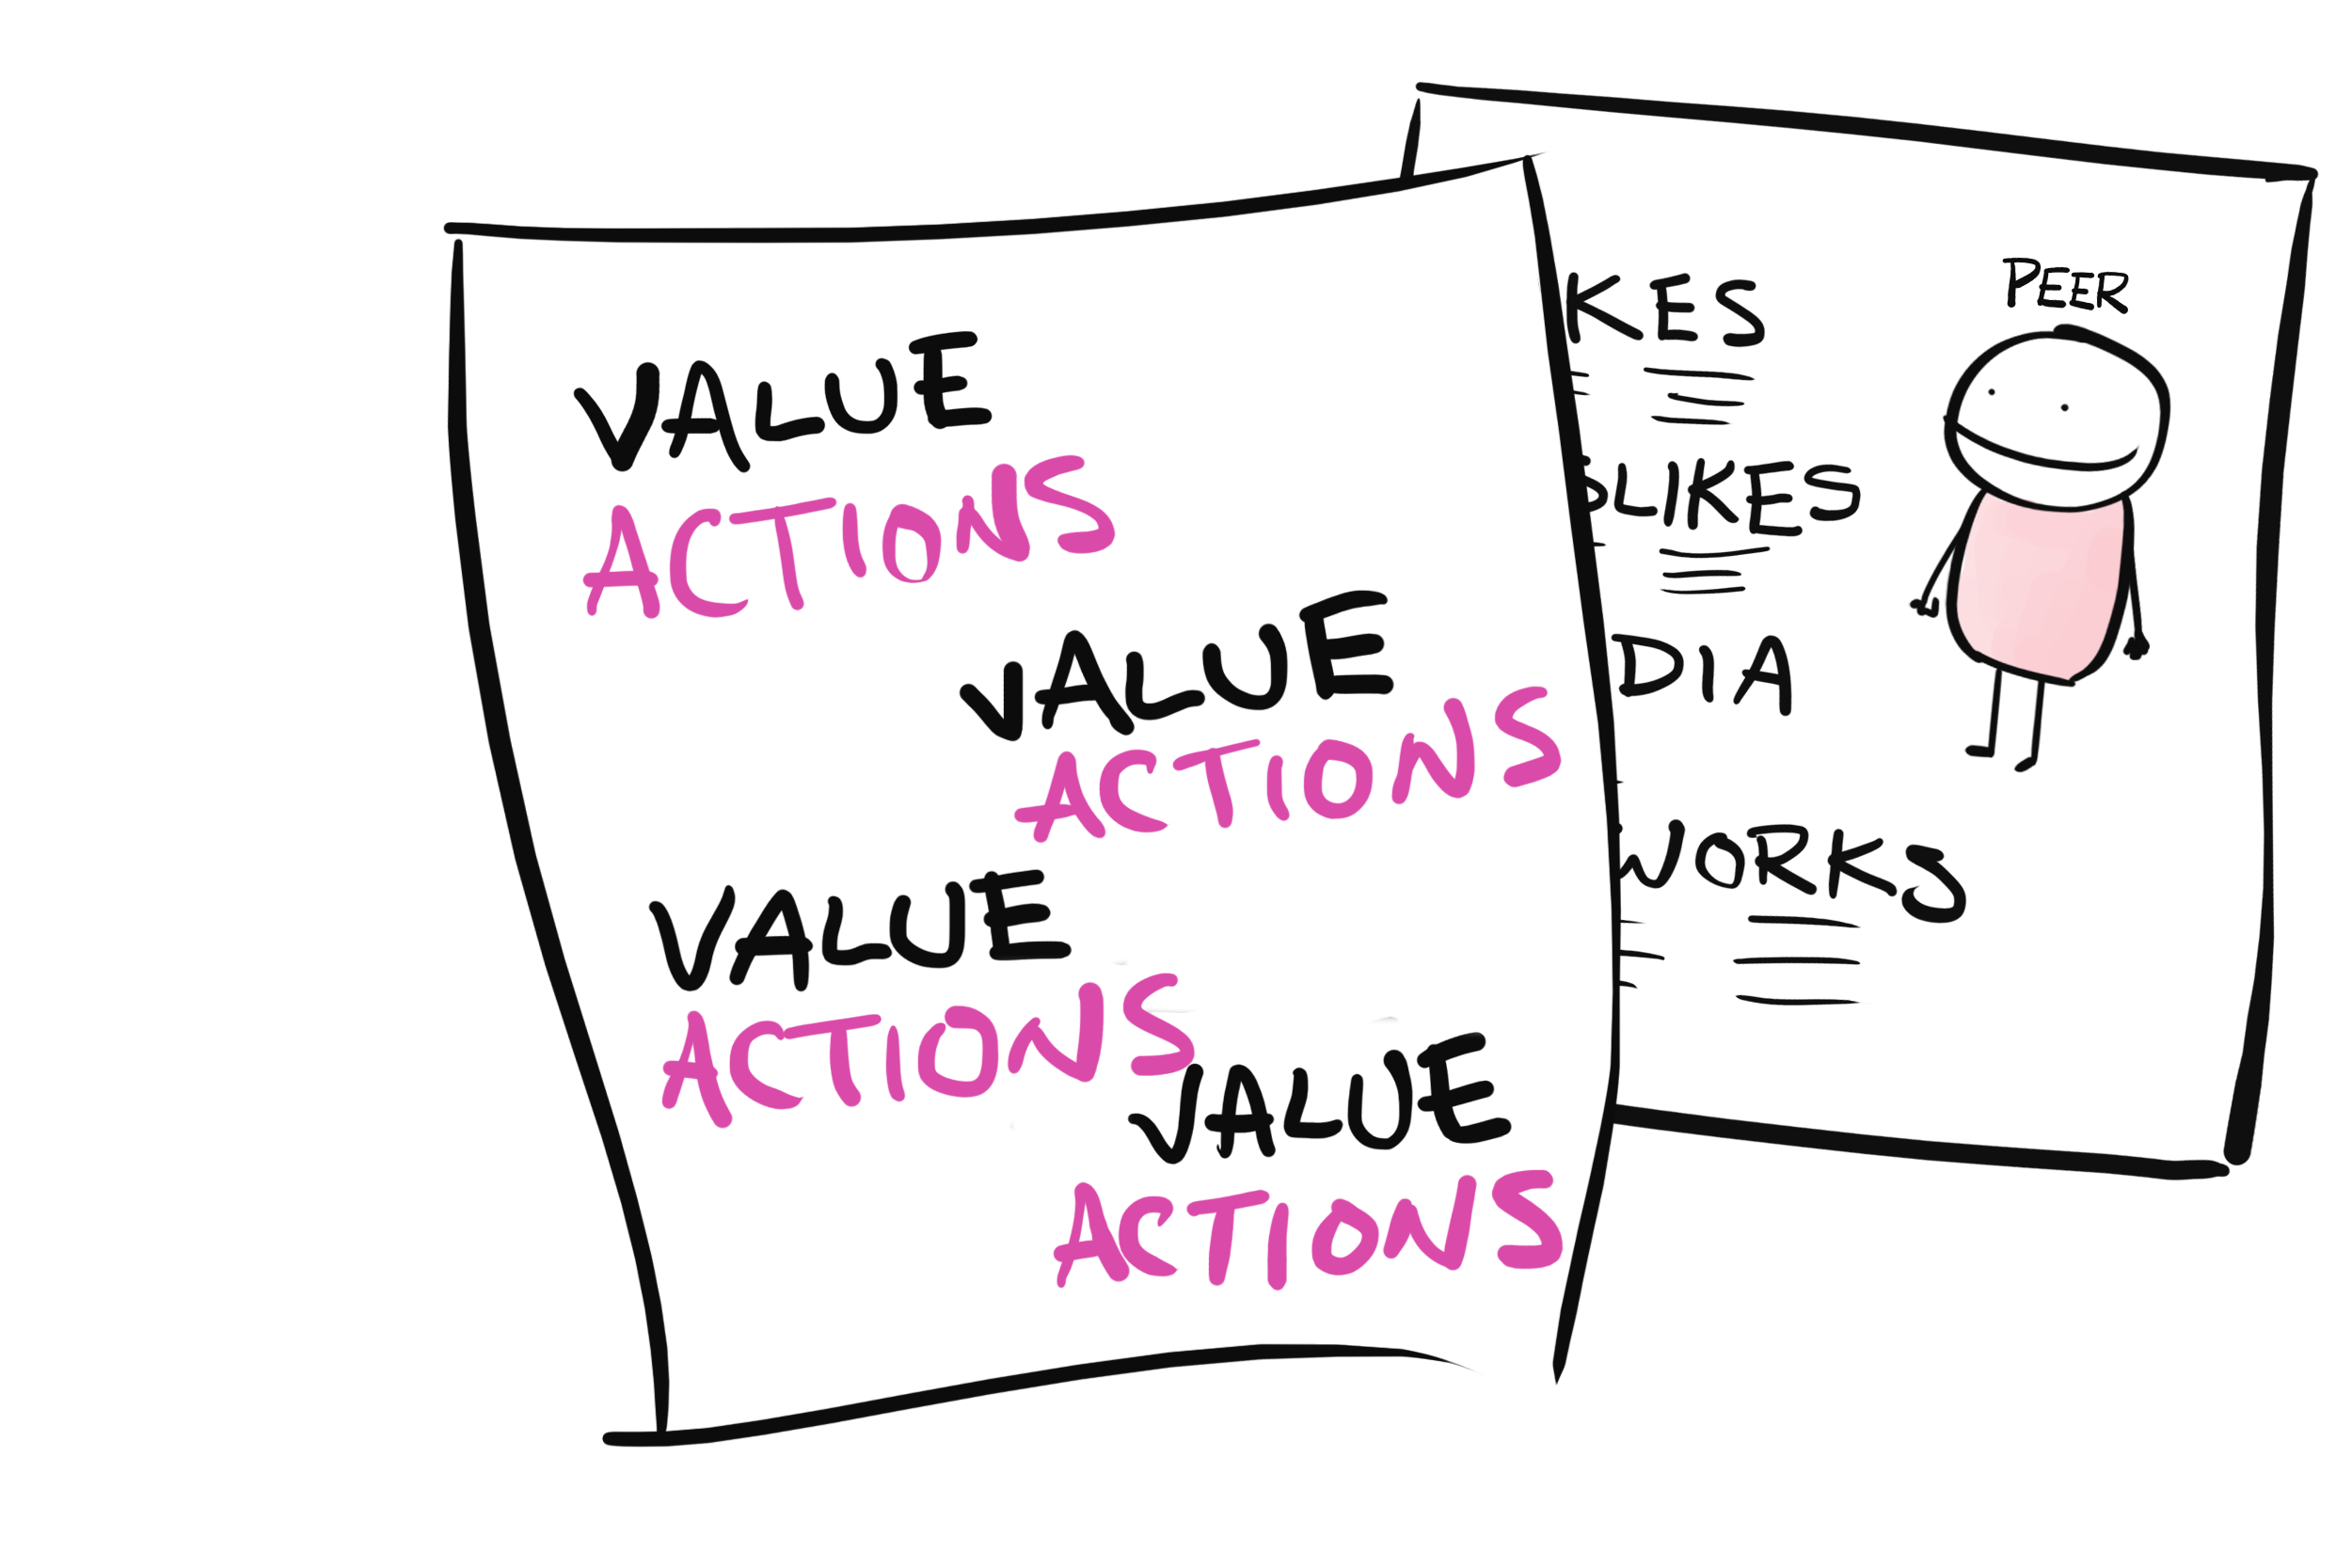 you_engagement_audience_values_actions_peer_profile